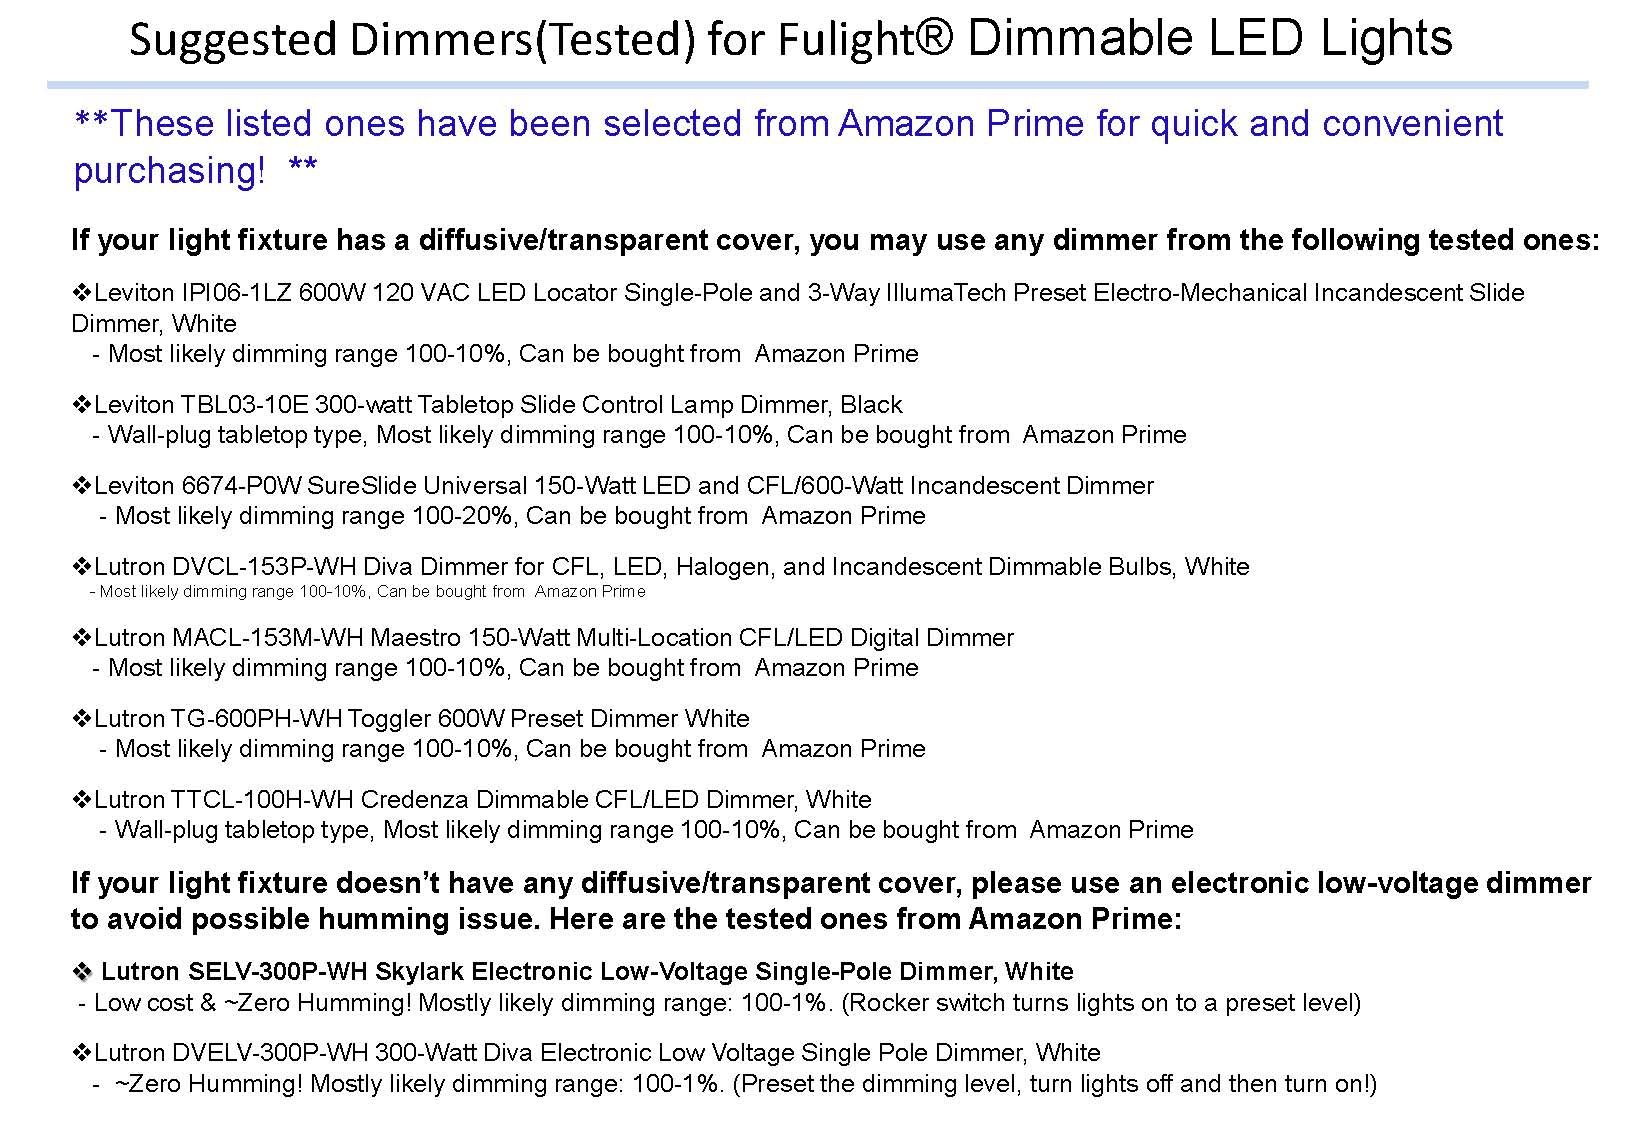 Fulight True-Color ¤ LED F15T8 Tube Light (Dimmable) - 18'' (17-3/4'' Actual Length) 1.5FT 7W, Cool White 4000K, Double-End Powered, Frosted Cover, Works from 110-120VAC by Fulight (Image #3)